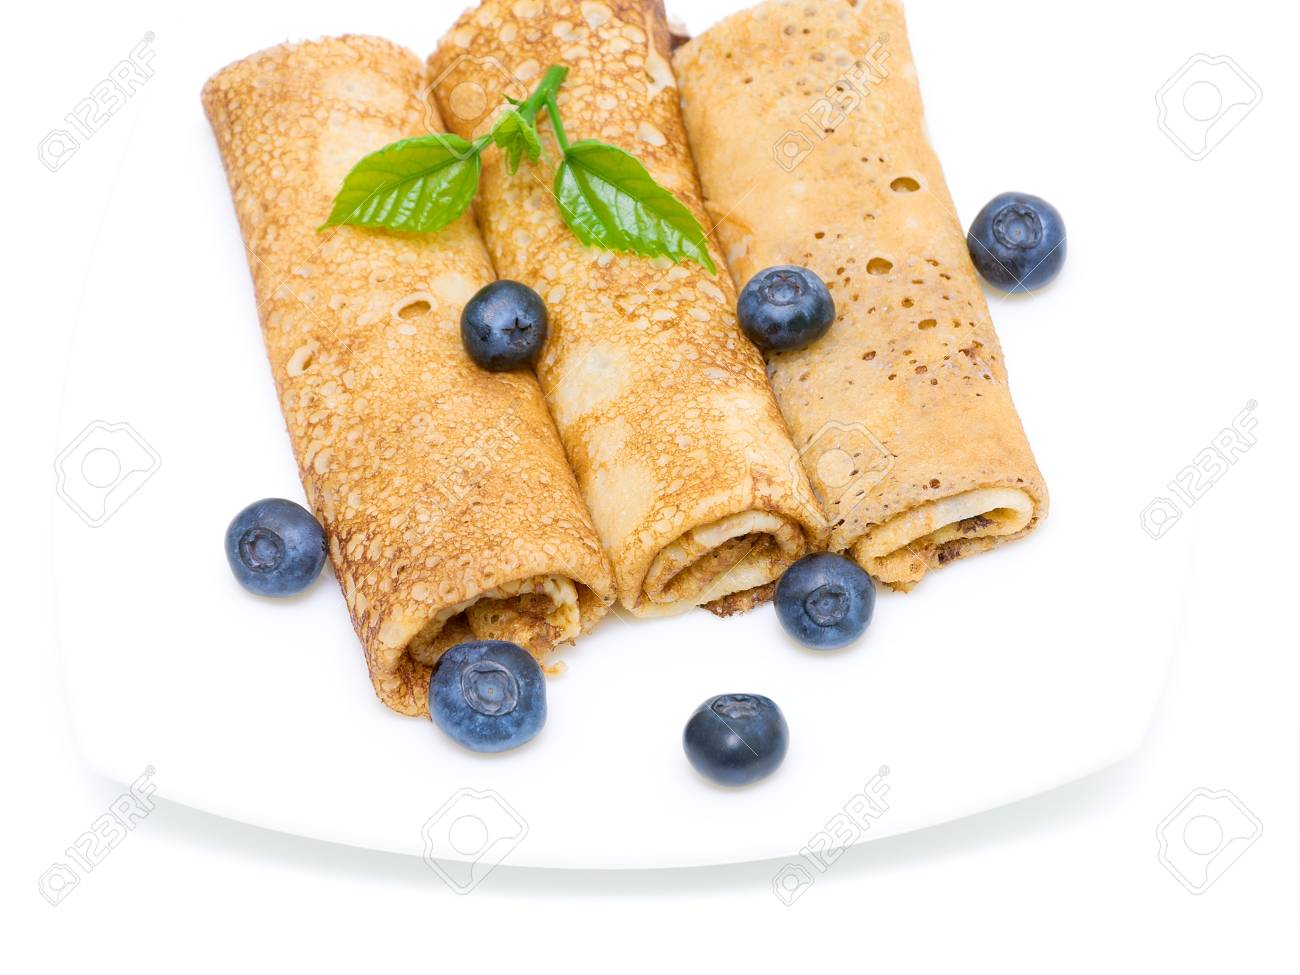 pancakes and fresh blueberries on a white background  Top view Stock Photo - 18513151